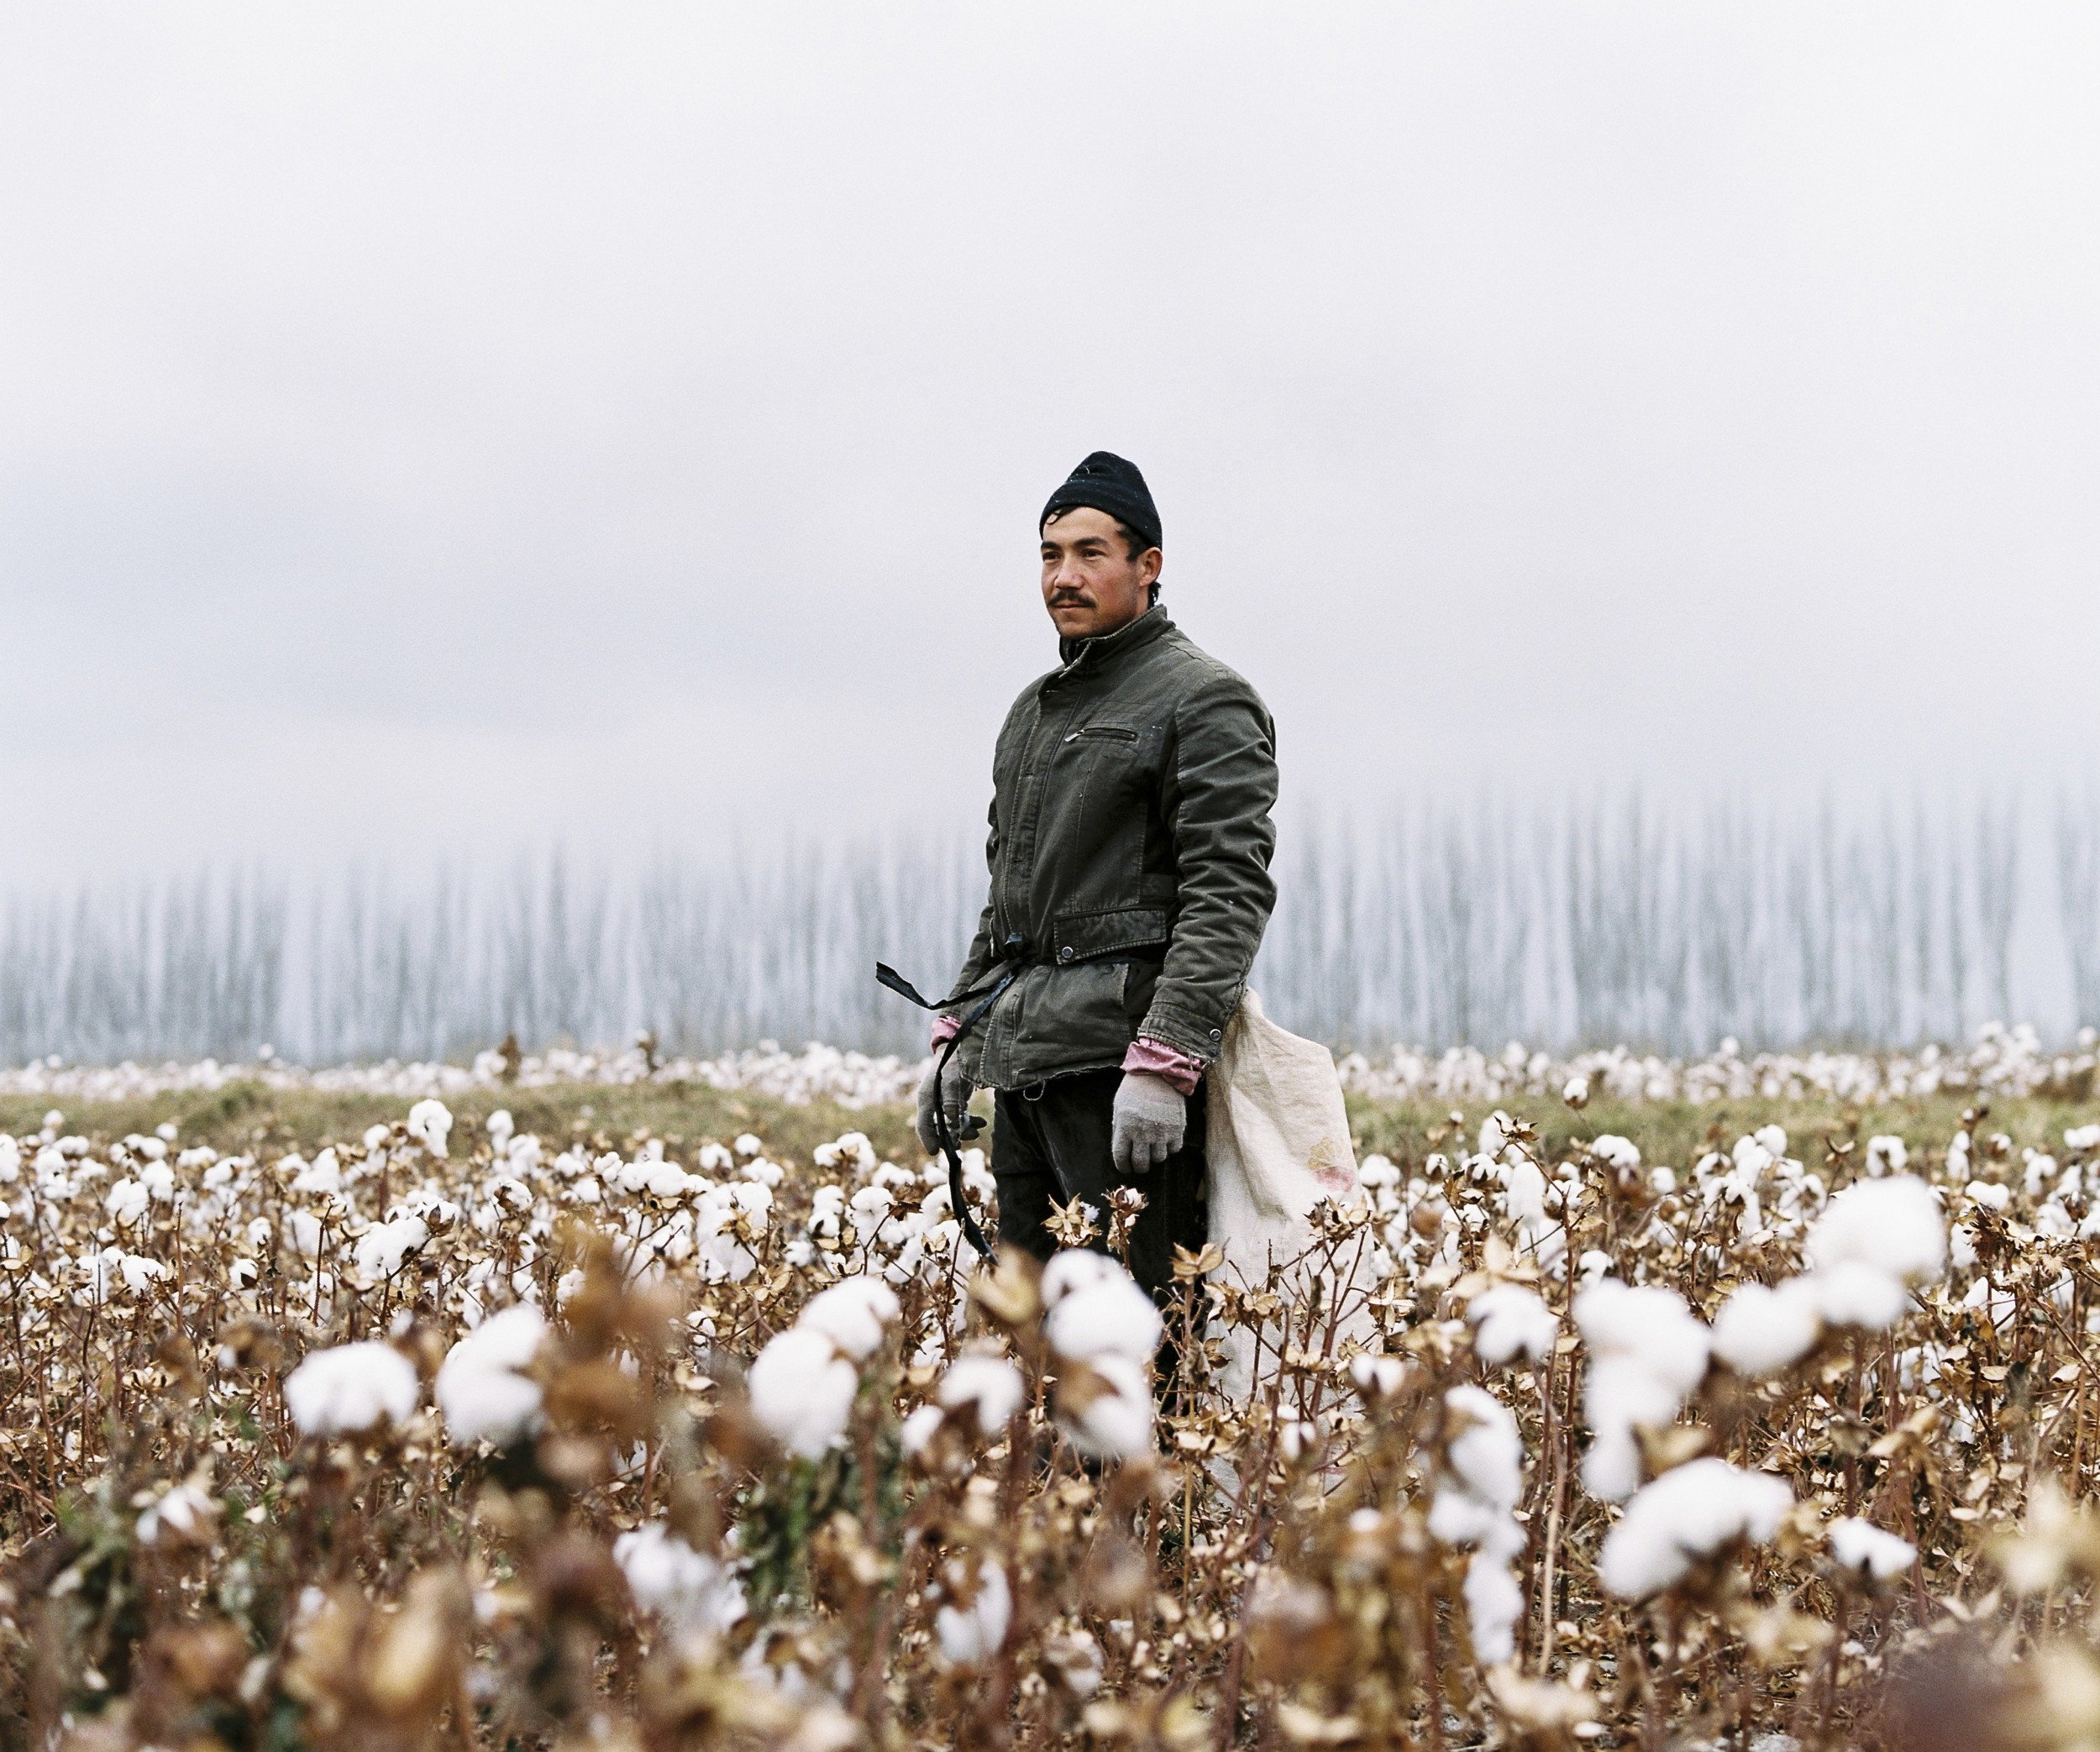 "November 2016. Xinjiang province, China. Young Uighur-minority seasonal worker in the last days of the cotton harvest in Luntai county in between the cities of Korla and Kuqa, north of the Taklamakan desert. Luntai is a county in the Xinjiang Uyghur Autonomous Region and is under the administration of the Bayin'gholin Mongol Autonomous Prefecture. Cotton is one of the largest agricultural industries in the province and many local Uighurs are used as cheap seasonal labour during the harvest.  Xinjiang is the westernmost province in all China, located at the border of Central Asian countries, Russia and Mongolia. More than twice the size of France, it has only 22 million inhabitants, a majority of which are the indigenous Uighurs, a sunni-muslim Turkic ethnic group which has lived in the region for centuries. Tensions have nonetheless arisen in the last decade as a consequence of the en-masse migration of Han Chinese settlers and confessional persecution by the strongly secular governmental authorities.  Borrowing from romanticized notions of the American frontier, synonymous with ideals of exploration and expansion, photographer Patrick Wack captures a visual narrative of China's westernmost region—Xinjiang. Whereas the American West conjures images of cowboys and pioneers, of manifest destiny and individualistic freedom, the Chinese West has not yet been so defined. It is a place of pluralities—of haunting, expansive landscapes, of rough mountains and vivid lakes, of new construction and oil fields, of abandoned structures in decaying towns, of devout faith and calls to prayer, of silence and maligned minorities, of opportunity and uncertain futures. It is a land of shifting identity. In essence, Xinjiang is the new frontier to be conquered and pondered. Literally translating to ""new frontier"" in Chinese, Xinjiang is a land apart, and has been so for centuries. More than twice the land area of France with a population less than the city of Shanghai, the Chinese province of Xinjiang once connected China to Central Asia and Europe as the first leg of the ancient Silk Road. Yet it remains physically, culturally, and politically distinct, an otherness within modern China. Its infinite sense of space; its flowing Arabic scripts and mosque-filled cityscapes; its designation as an autonomous region; and simmering beneath, its uneasy relationship with the encroaching, imposing, surveilling East. For China's ethnic Han majority, Xinjiang is once again the new frontier, to be awakened for Beijing's new Silk Road—China's own manifest destiny—with the promise of prosperity in its plentiful oil fields. For Patrick Wack, Out West is as a much a story of the region as it is his own, as much a documentation of a contemporary and historical place as it is an emotional journey of what it means to strive, and for what. There exists an inherent fascination in the region—as both key and foil to the new China—and a siren's call to its vast limitlessness that instinctively incites introspection and desire. Showcasing a romanticism of the frontier, Out West presents Xinjiang via the lens of its present day, in photography that speaks of the surrealistic tranquility—and disquiet—of the unknown. Out West offers an experience of Xinjiang that highlights its estrangement from contemporary perceptions of the new China, accentuating undercurrents of tension and the mystique it has cultivated—whether in their minds or ours. At its core, Out West is a question of perspective: What is the West but the East to another?"